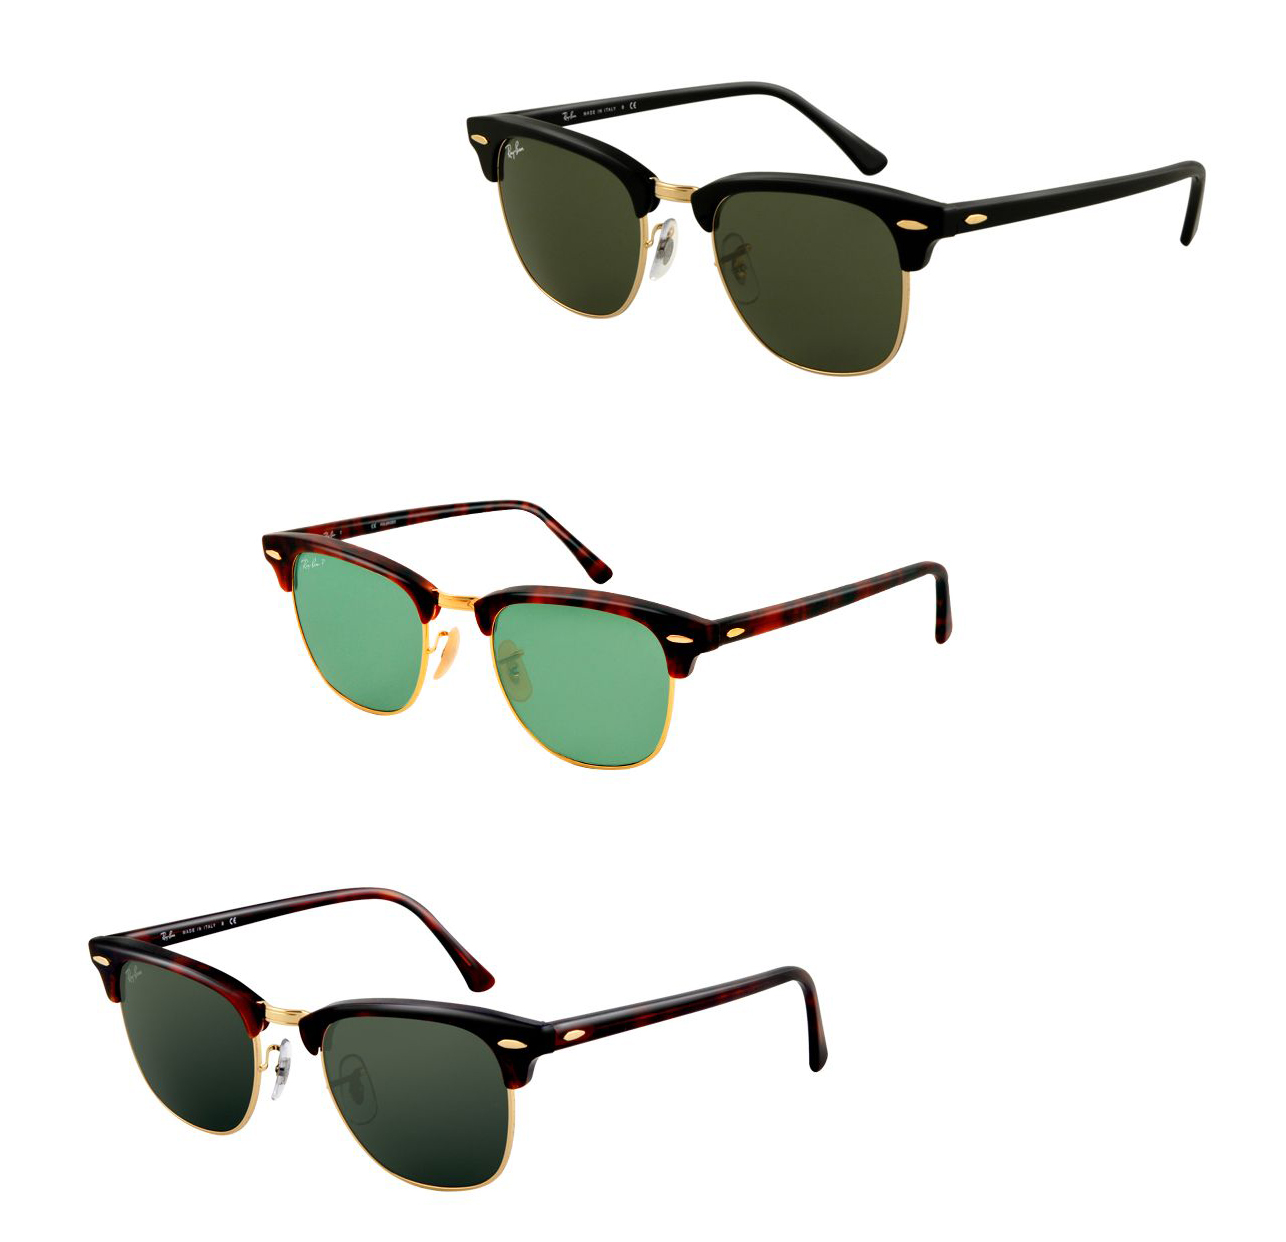 Ray-Ban Clubmaster Sunglasses RB3016   4.4 Star Rating w  Free Shipping and  Handling 104ba1d70a9f